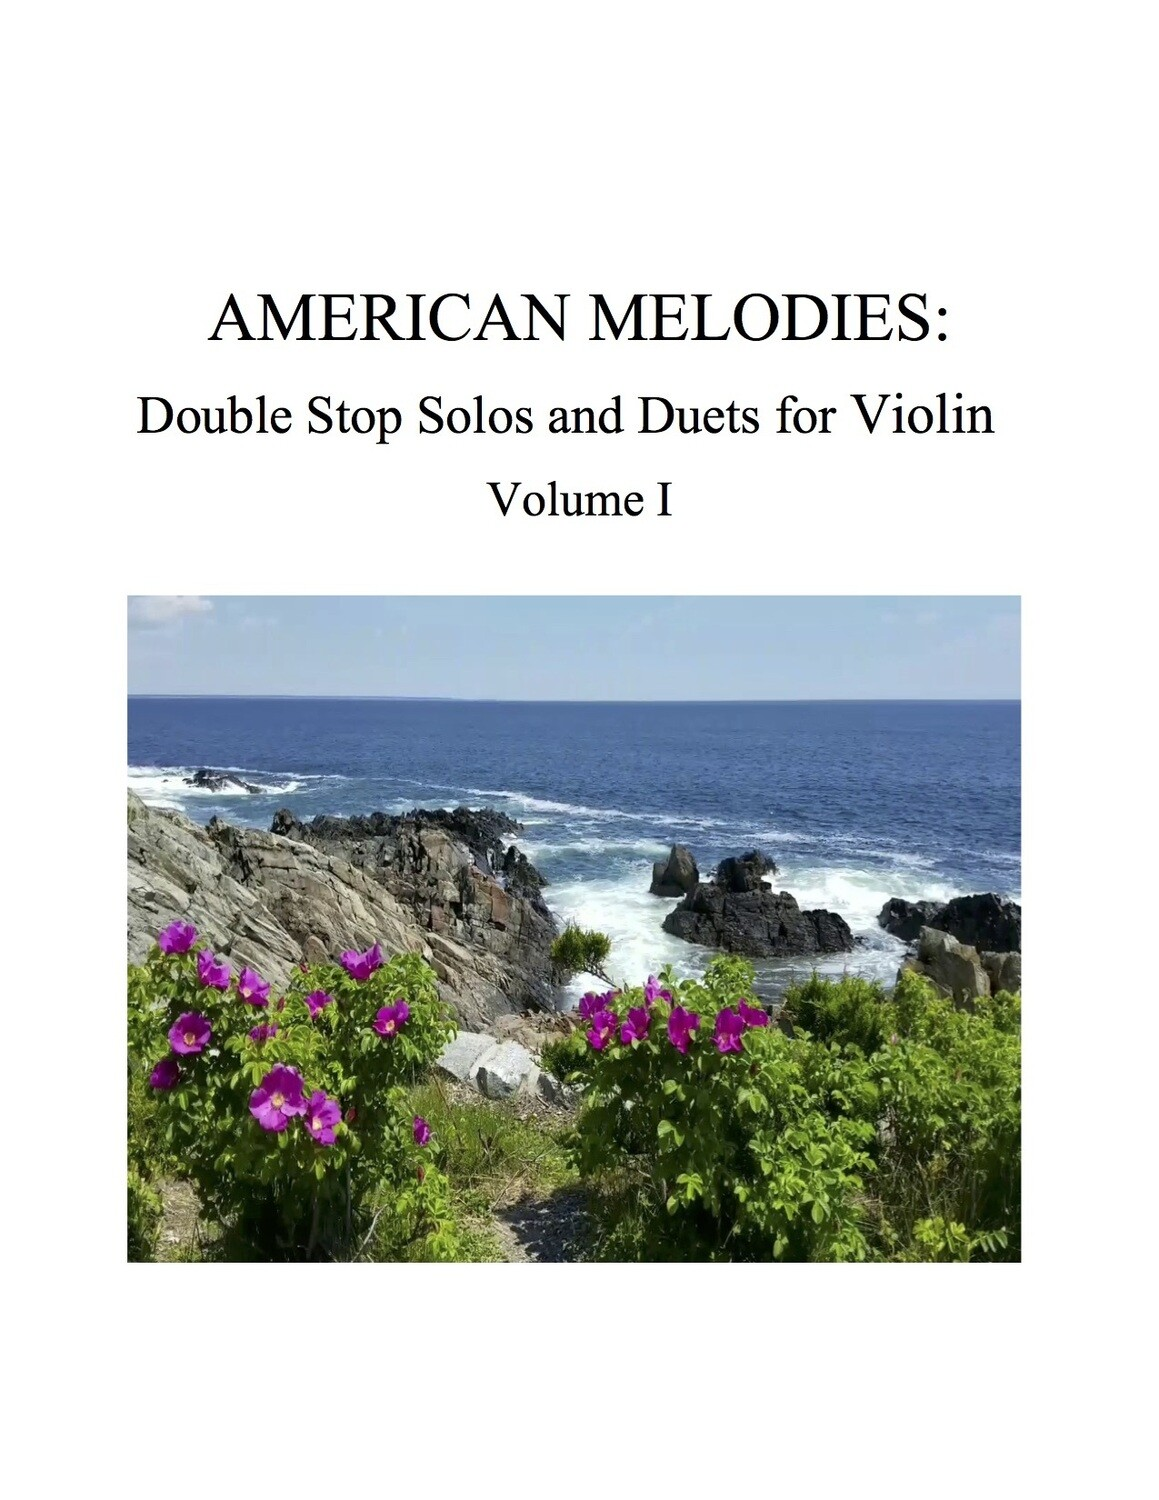 027 - American Melodies for Violin, Double Stop Solos and Duets, Volume I